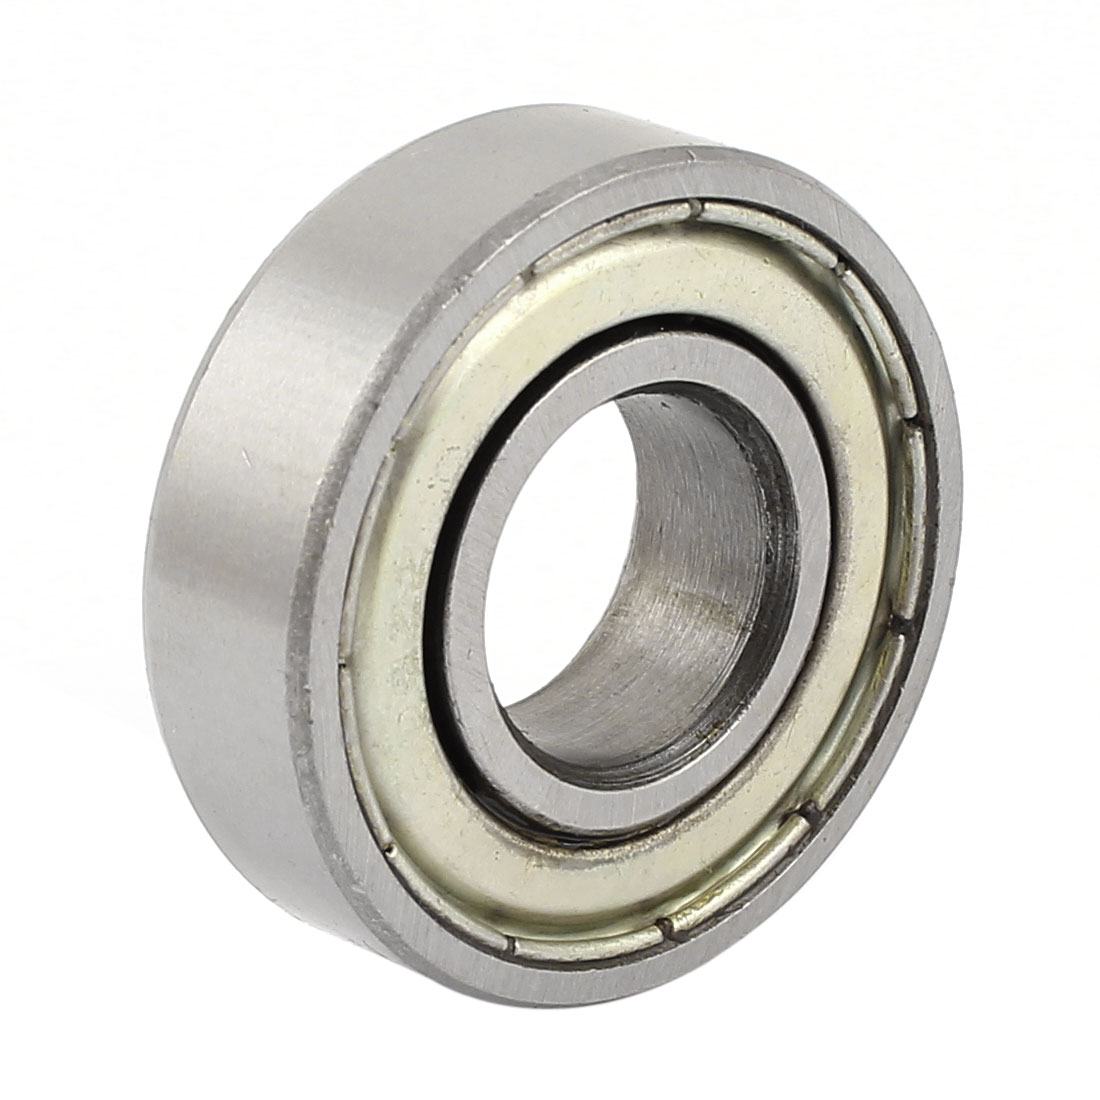 6303ZZ Carbon Steel Sealed Roller-Skating Skating Deep Groove Ball Bearing 40mm x 17mm x 11.5mm